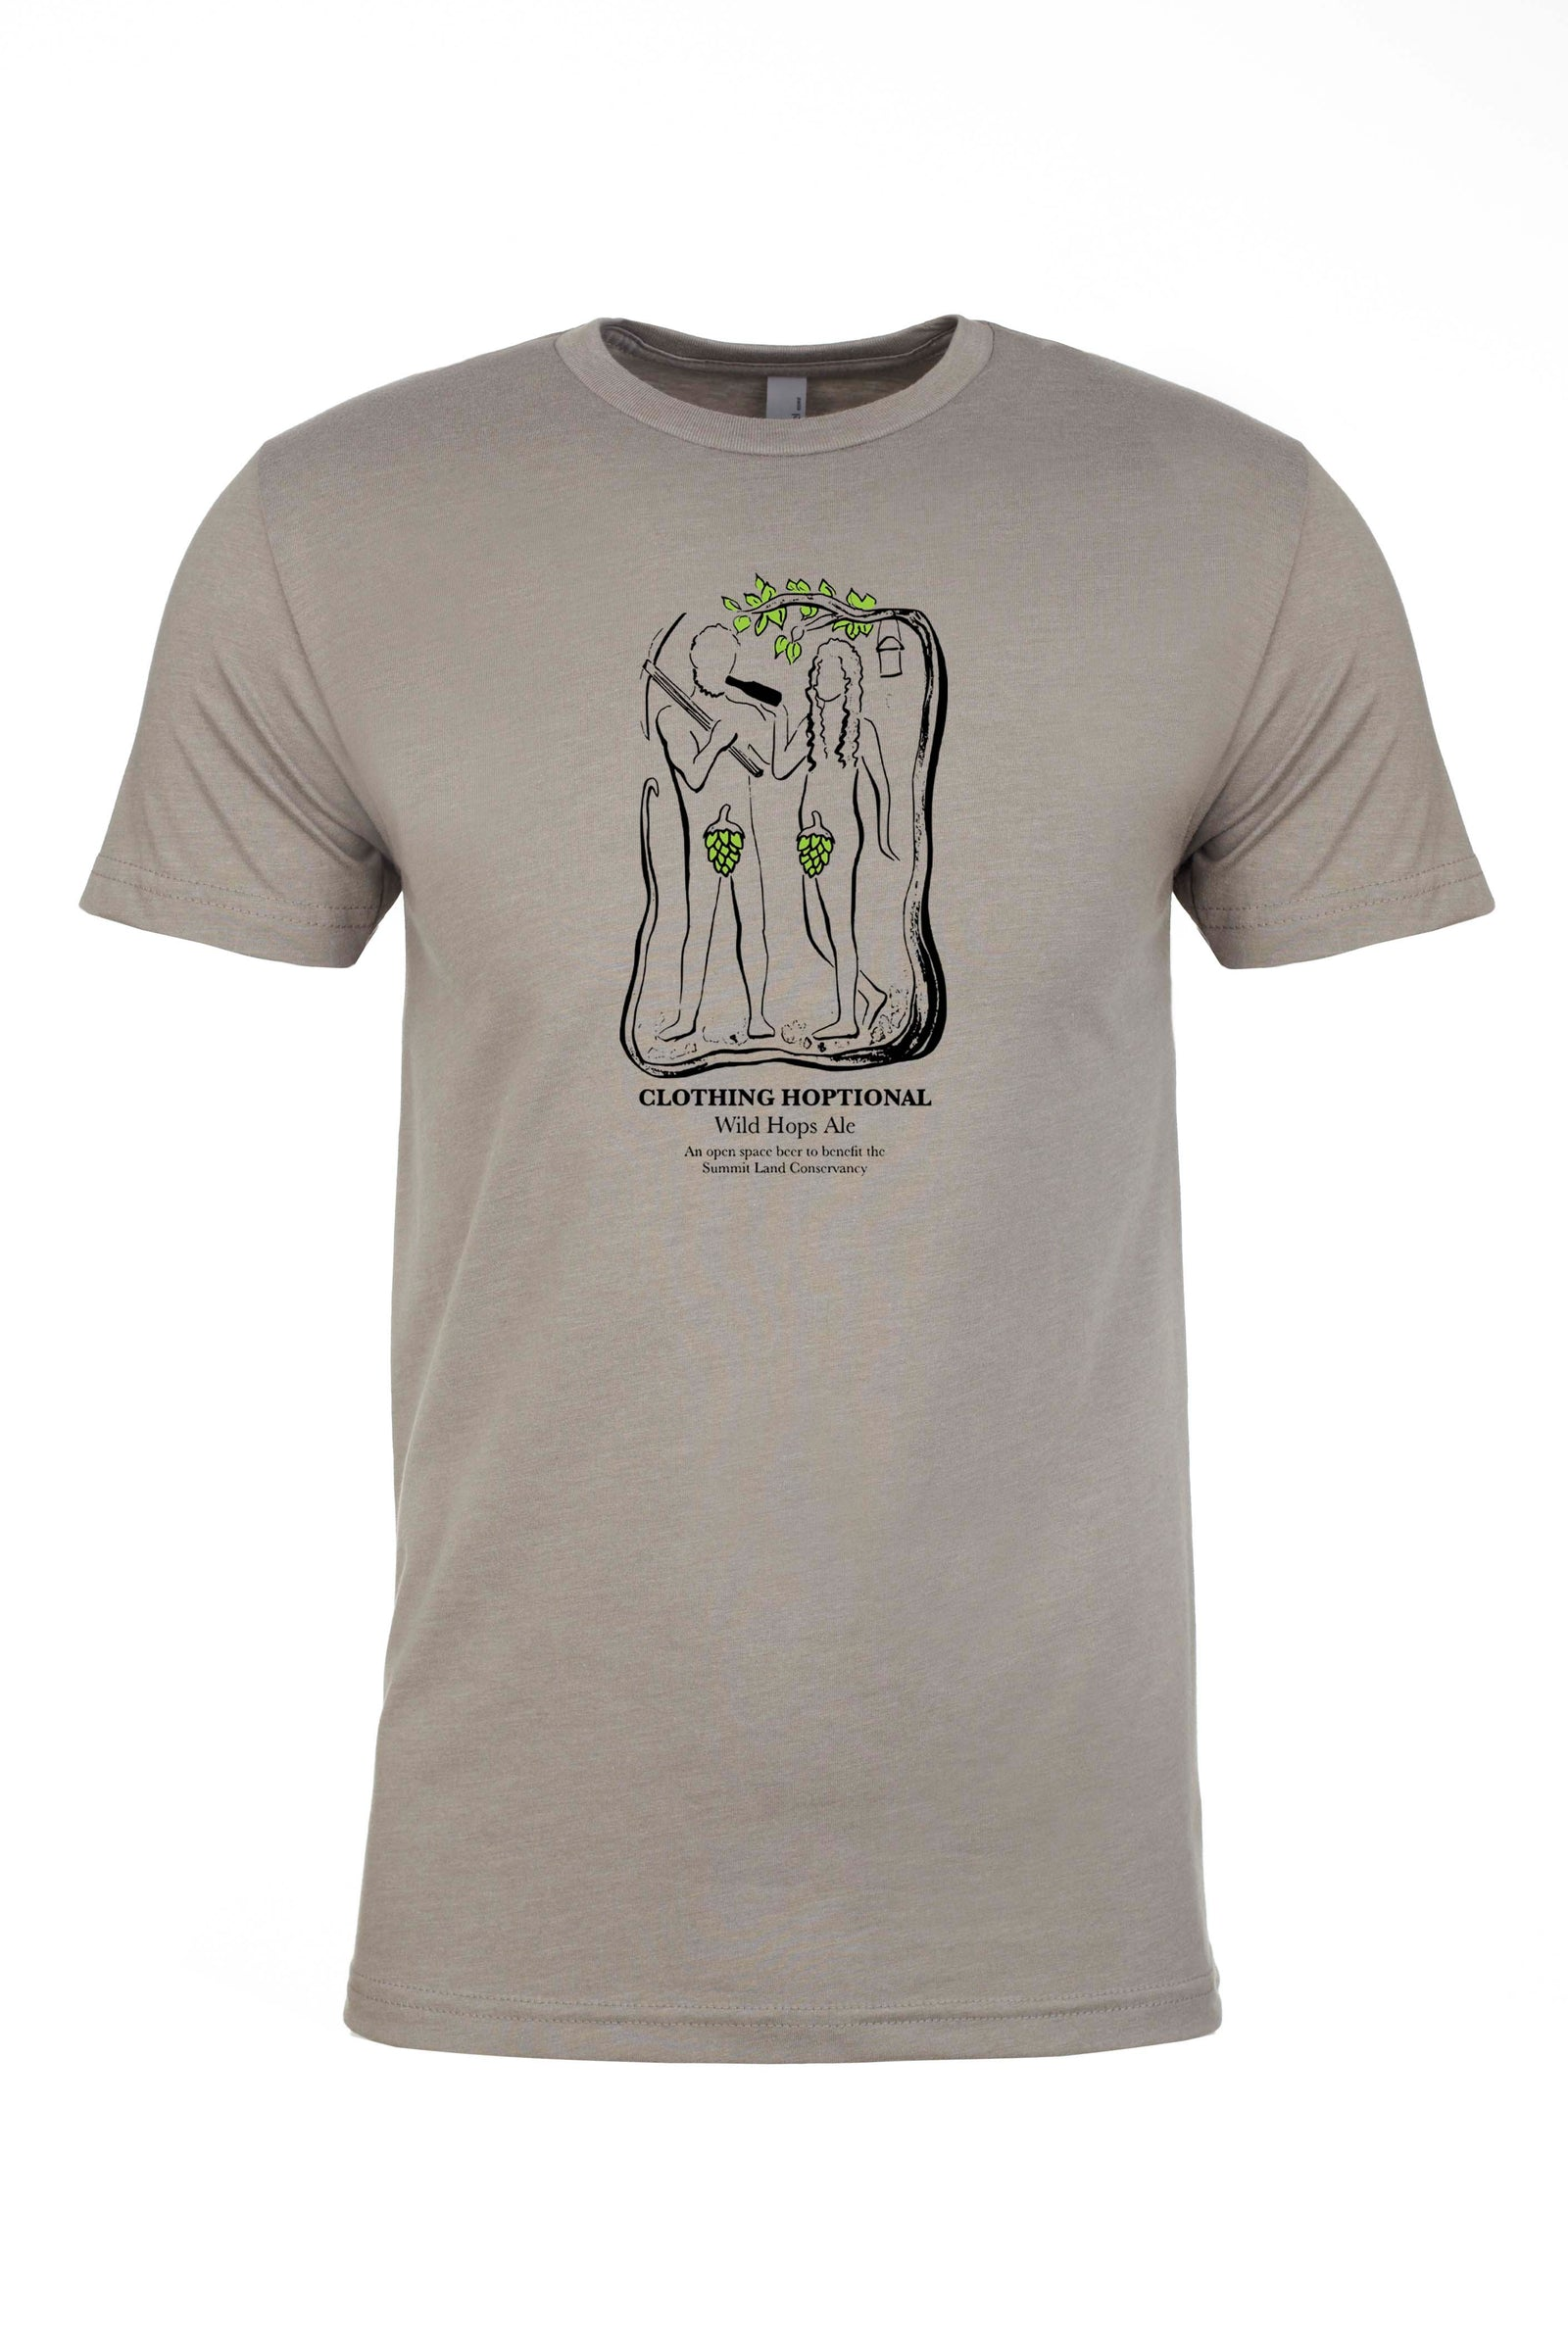 Summit Land Conservancy Clothing Hoptional Tshirt